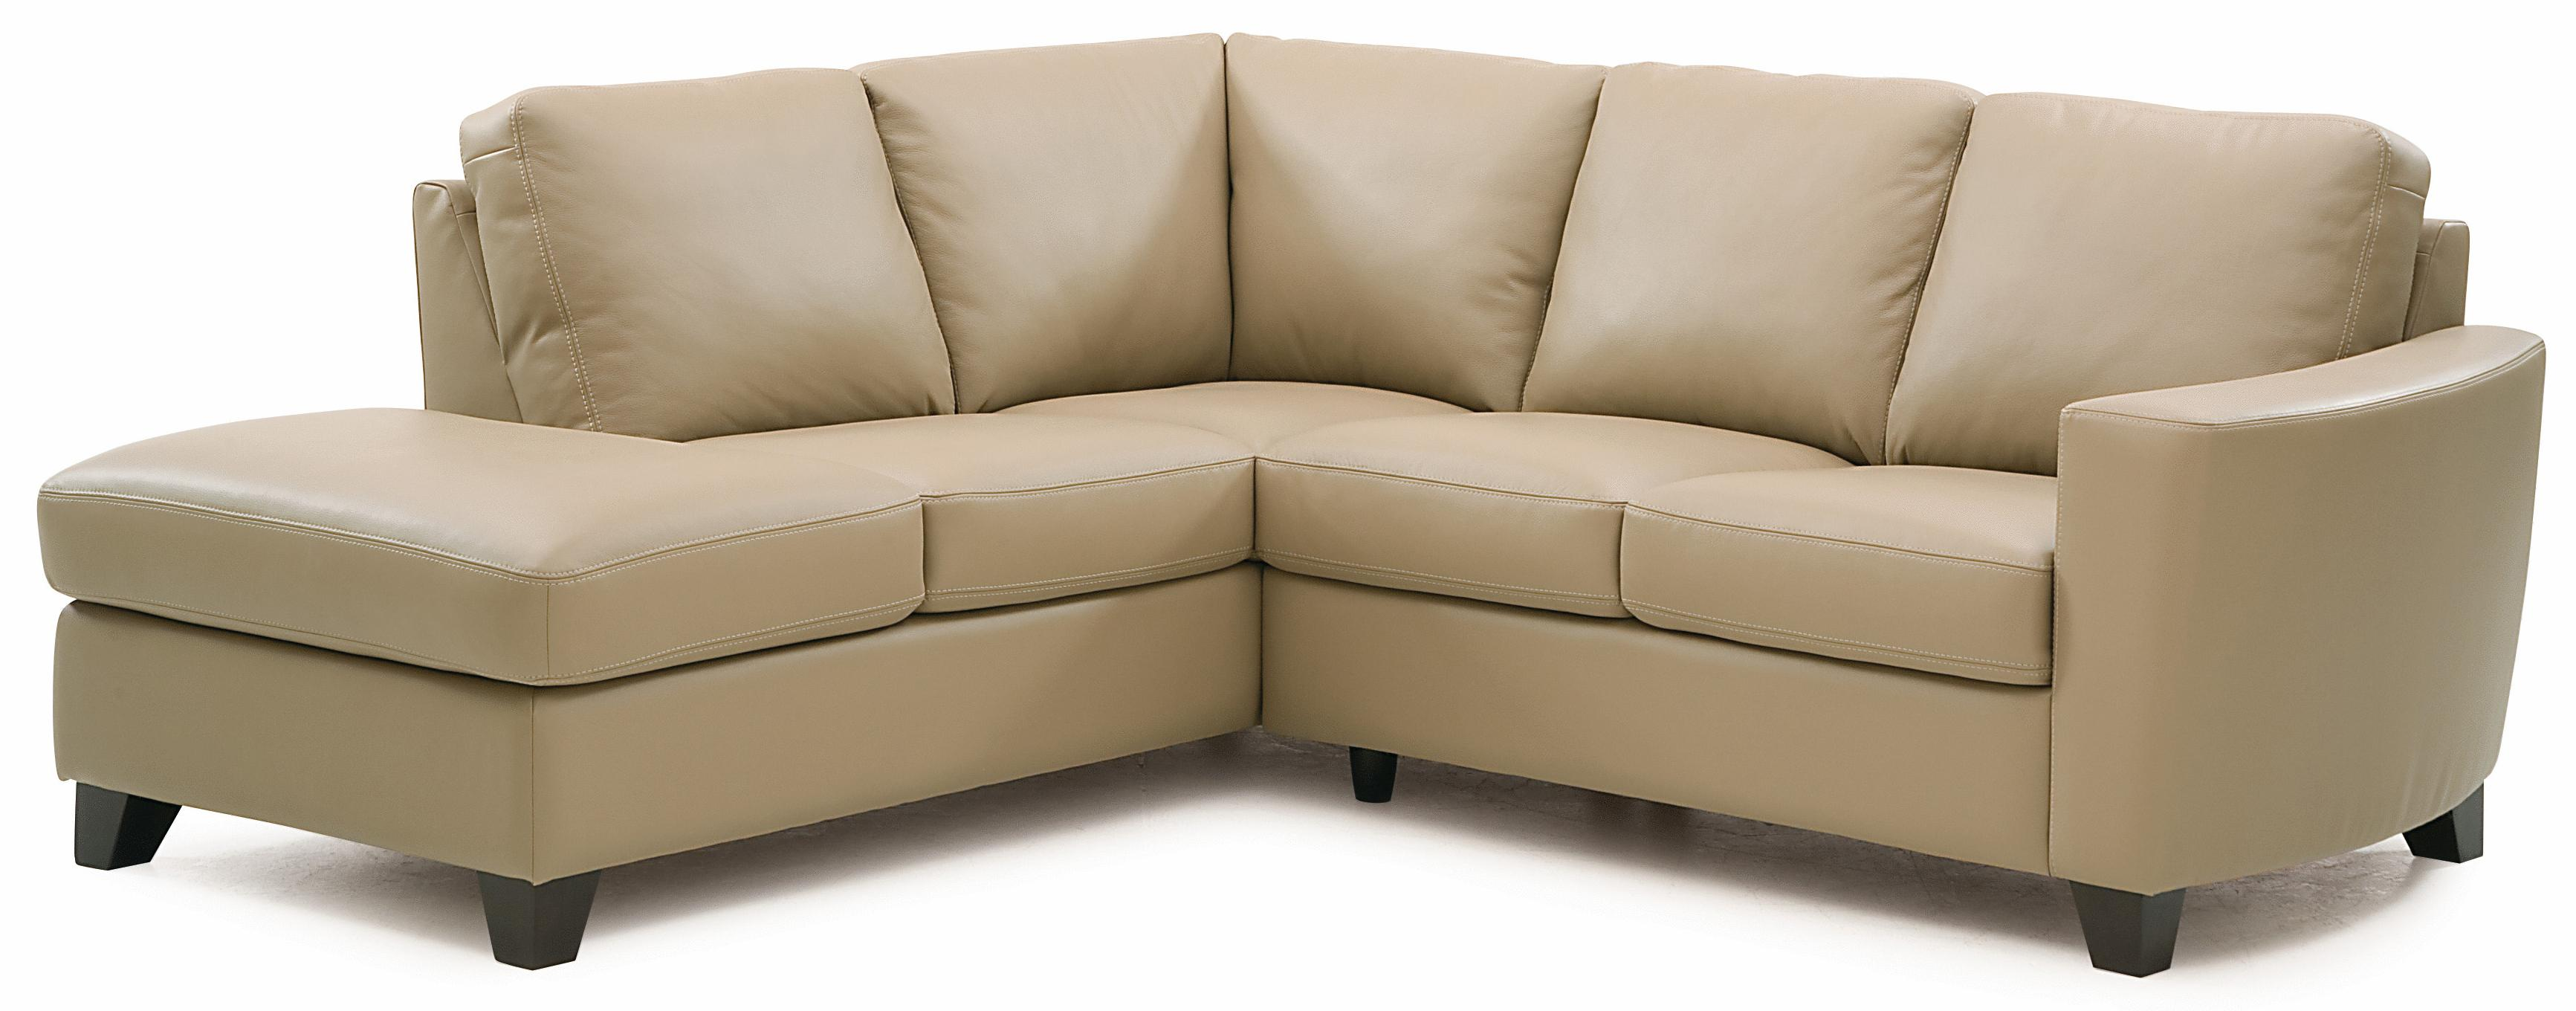 palliser leeds contemporary 2 piece sectional with laf chaise